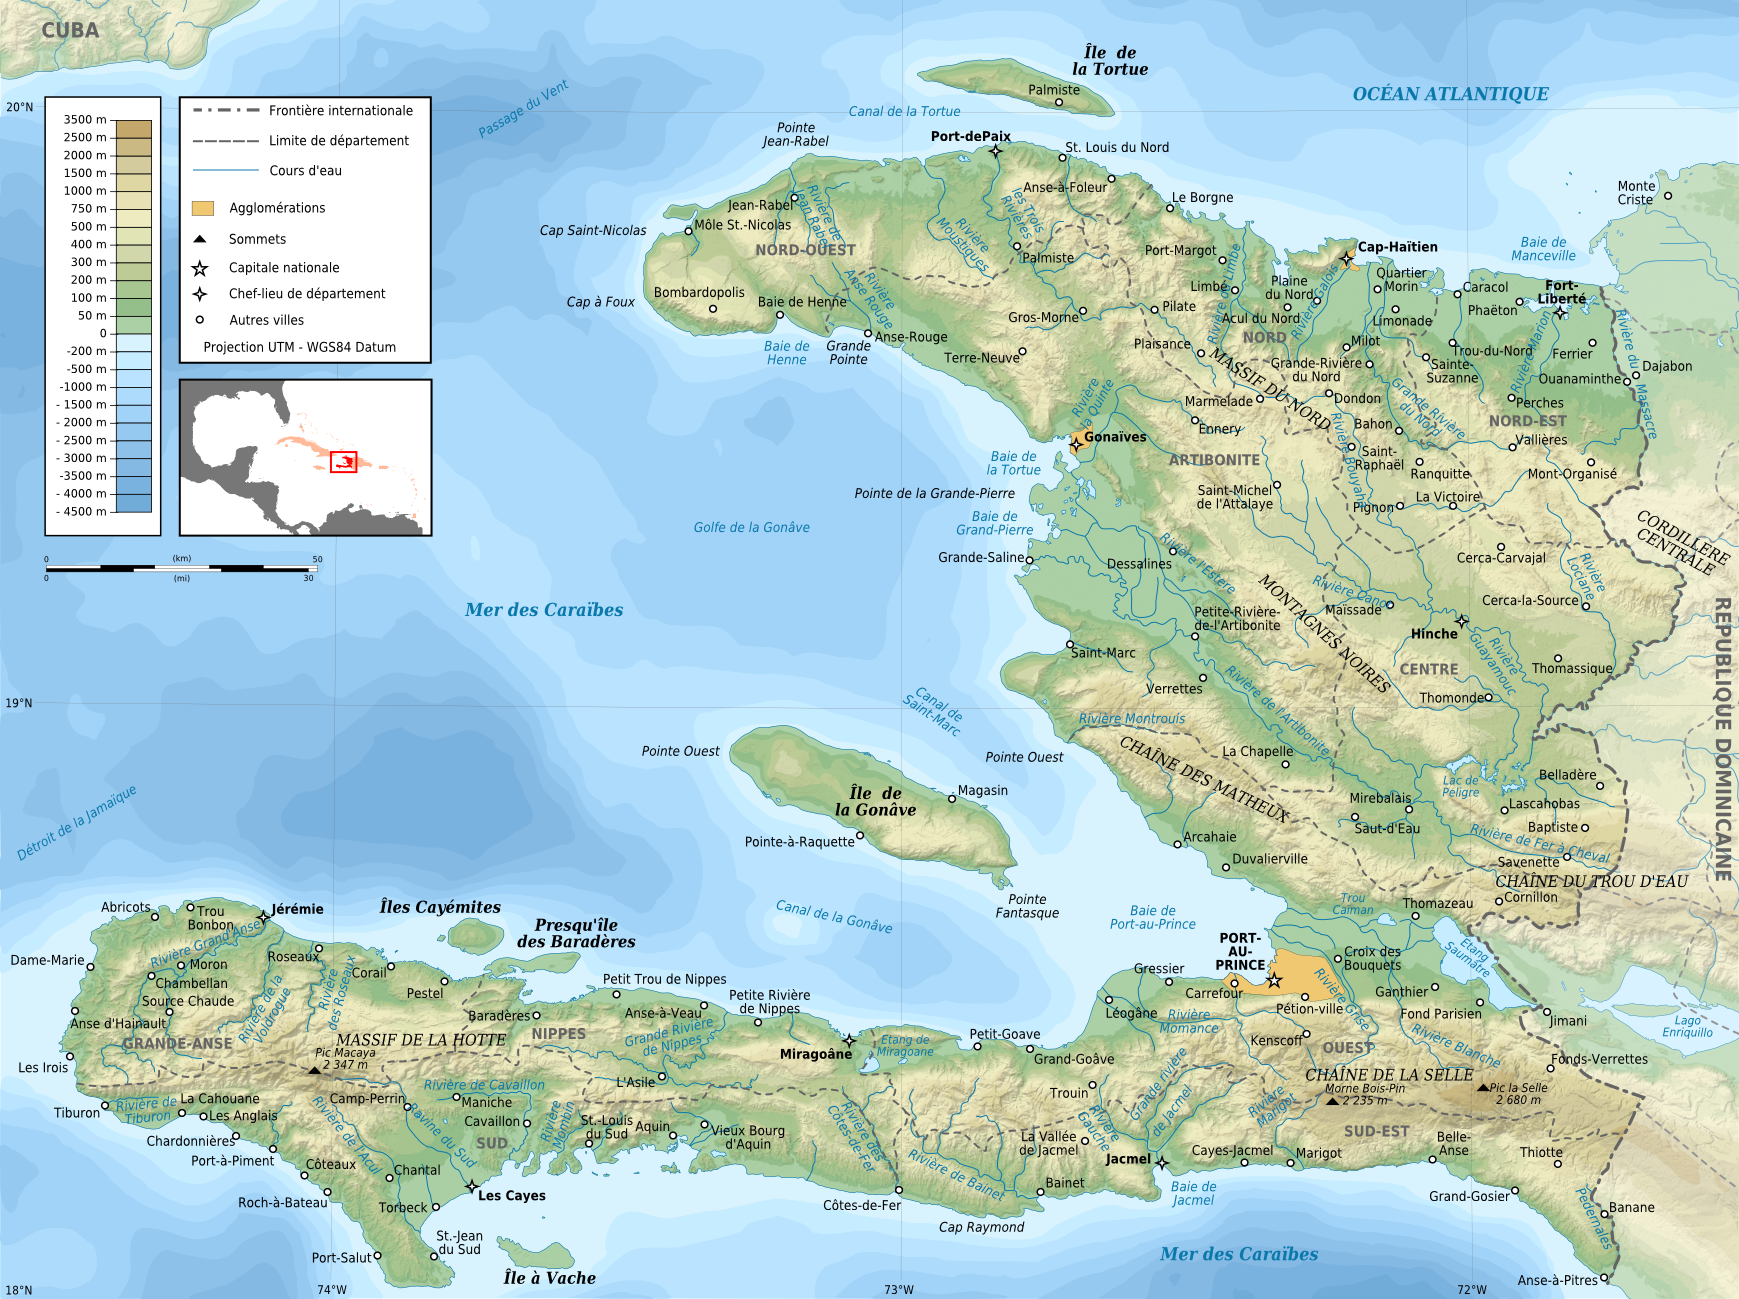 Atlas of haiti wikimedia commons haiti topographic map frg gumiabroncs Choice Image